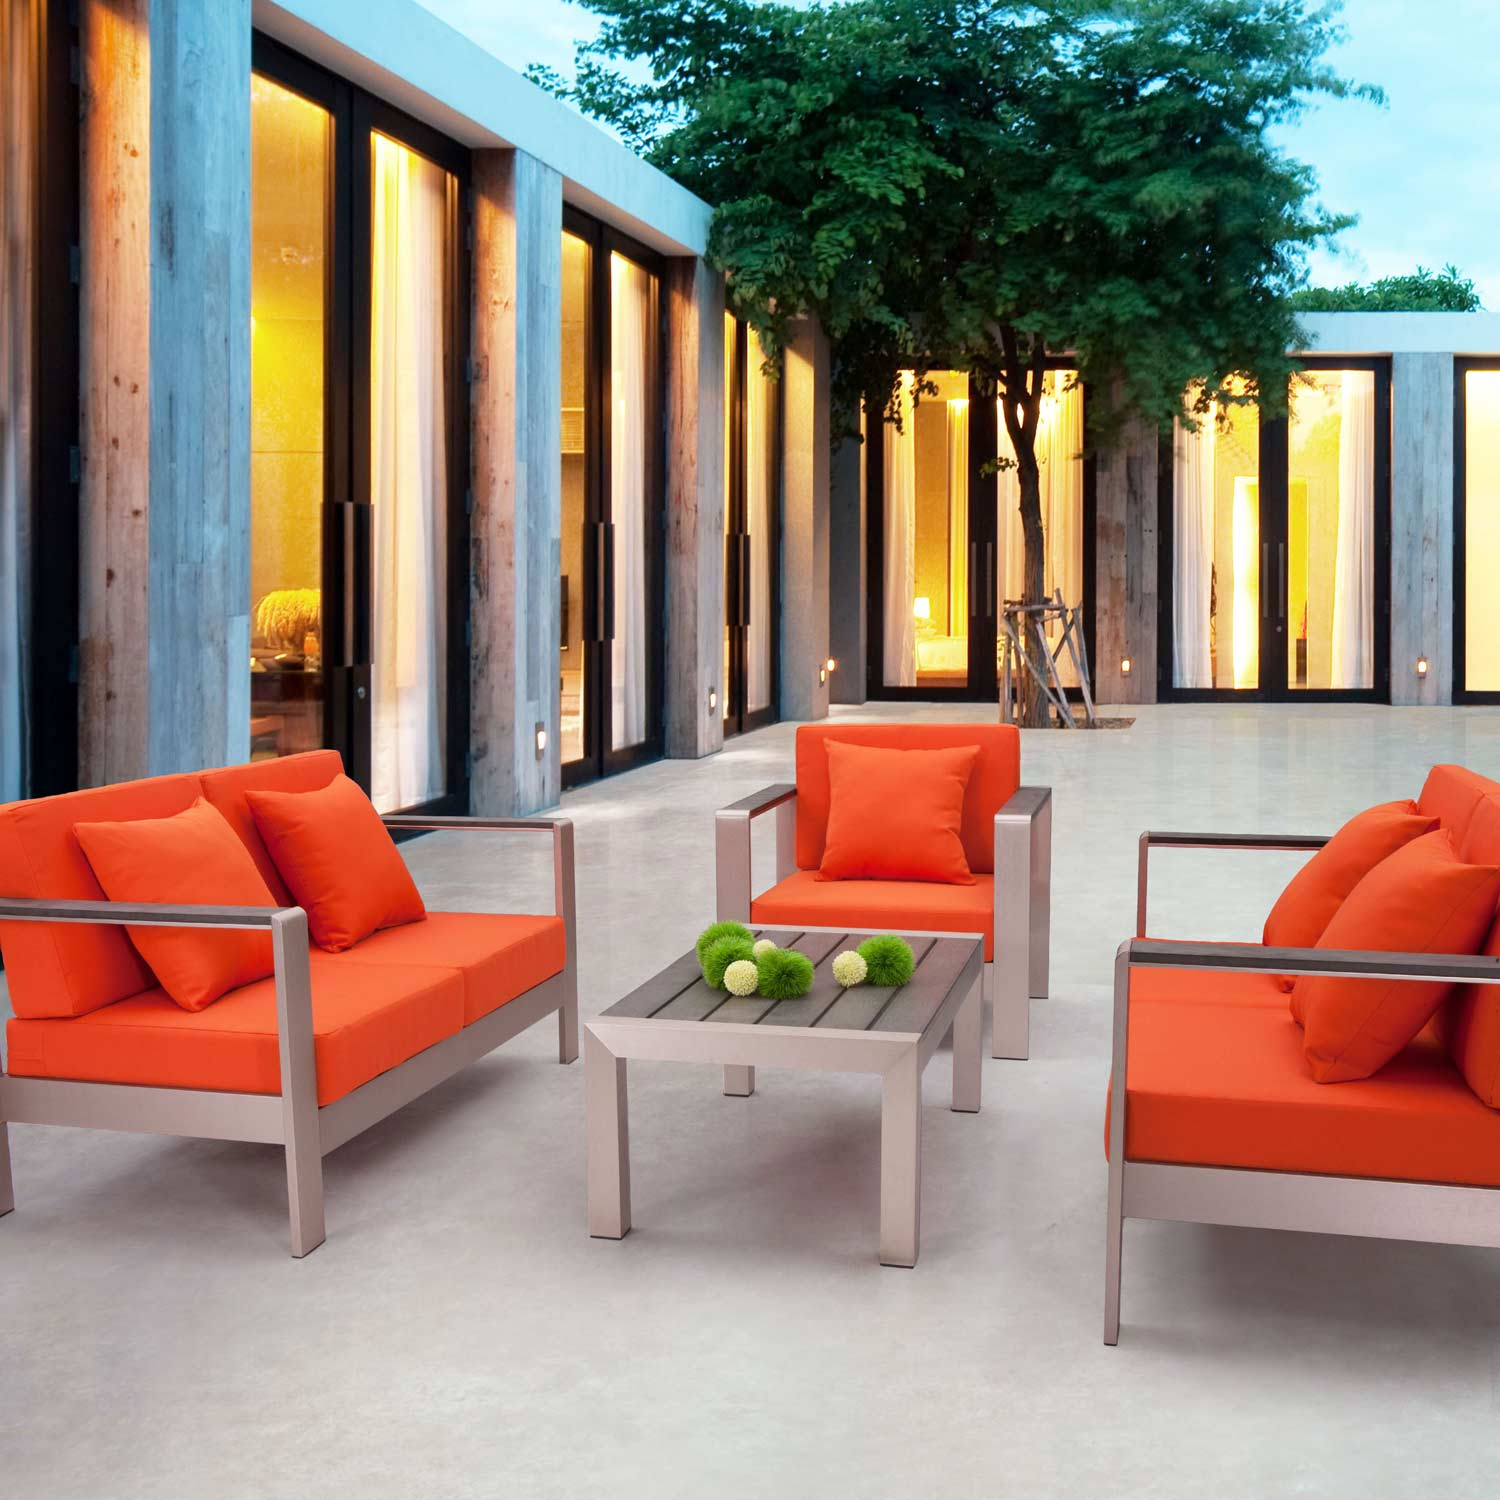 Cosmopolitan Patio Sofa - Brushed Aluminum, Teak, Orange - ZM-701850-703652